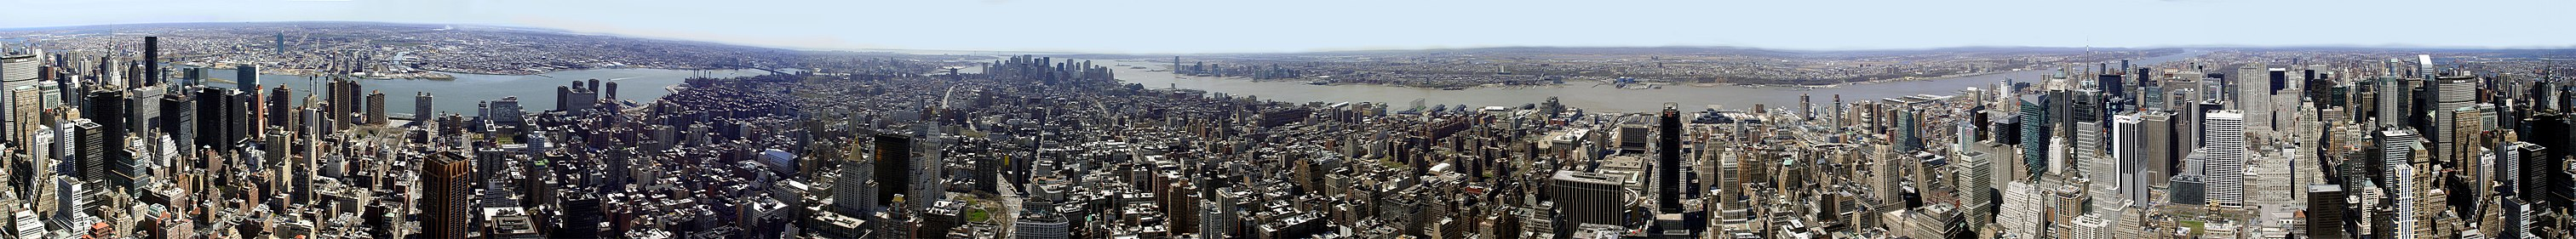 Panorama Manhattana